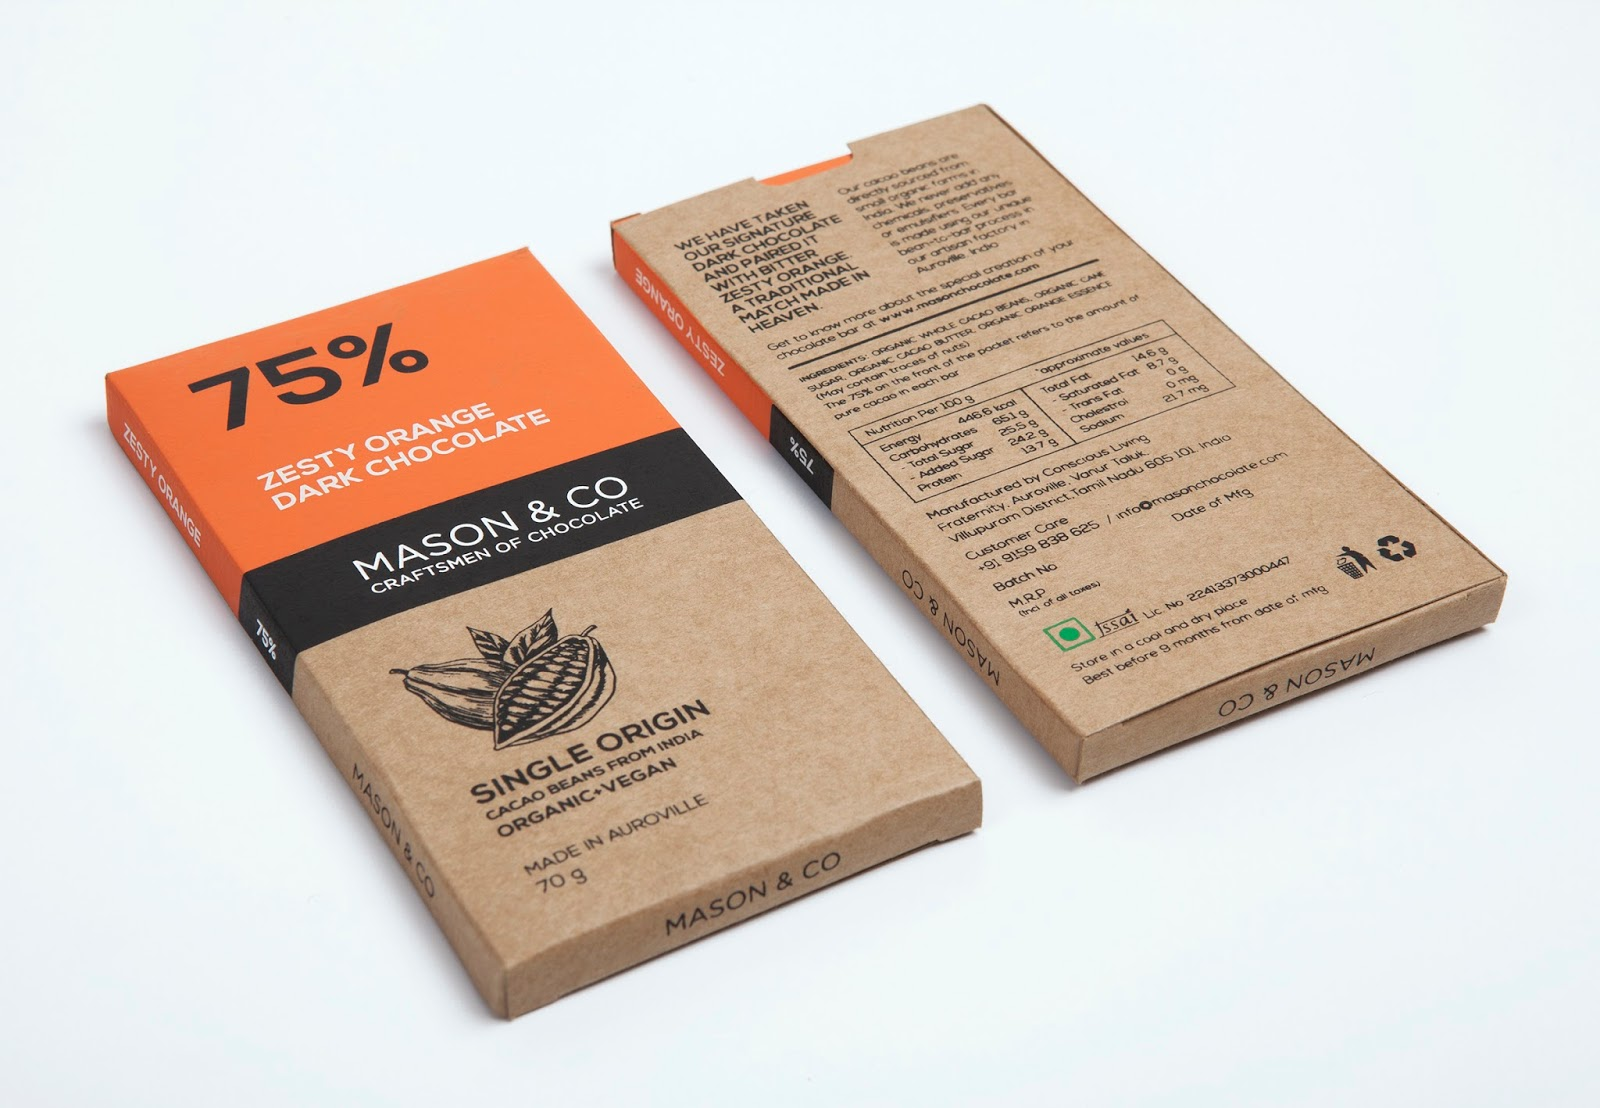 Mason & Co Chocolate Bars - The Dark Chocolate Collection on ...